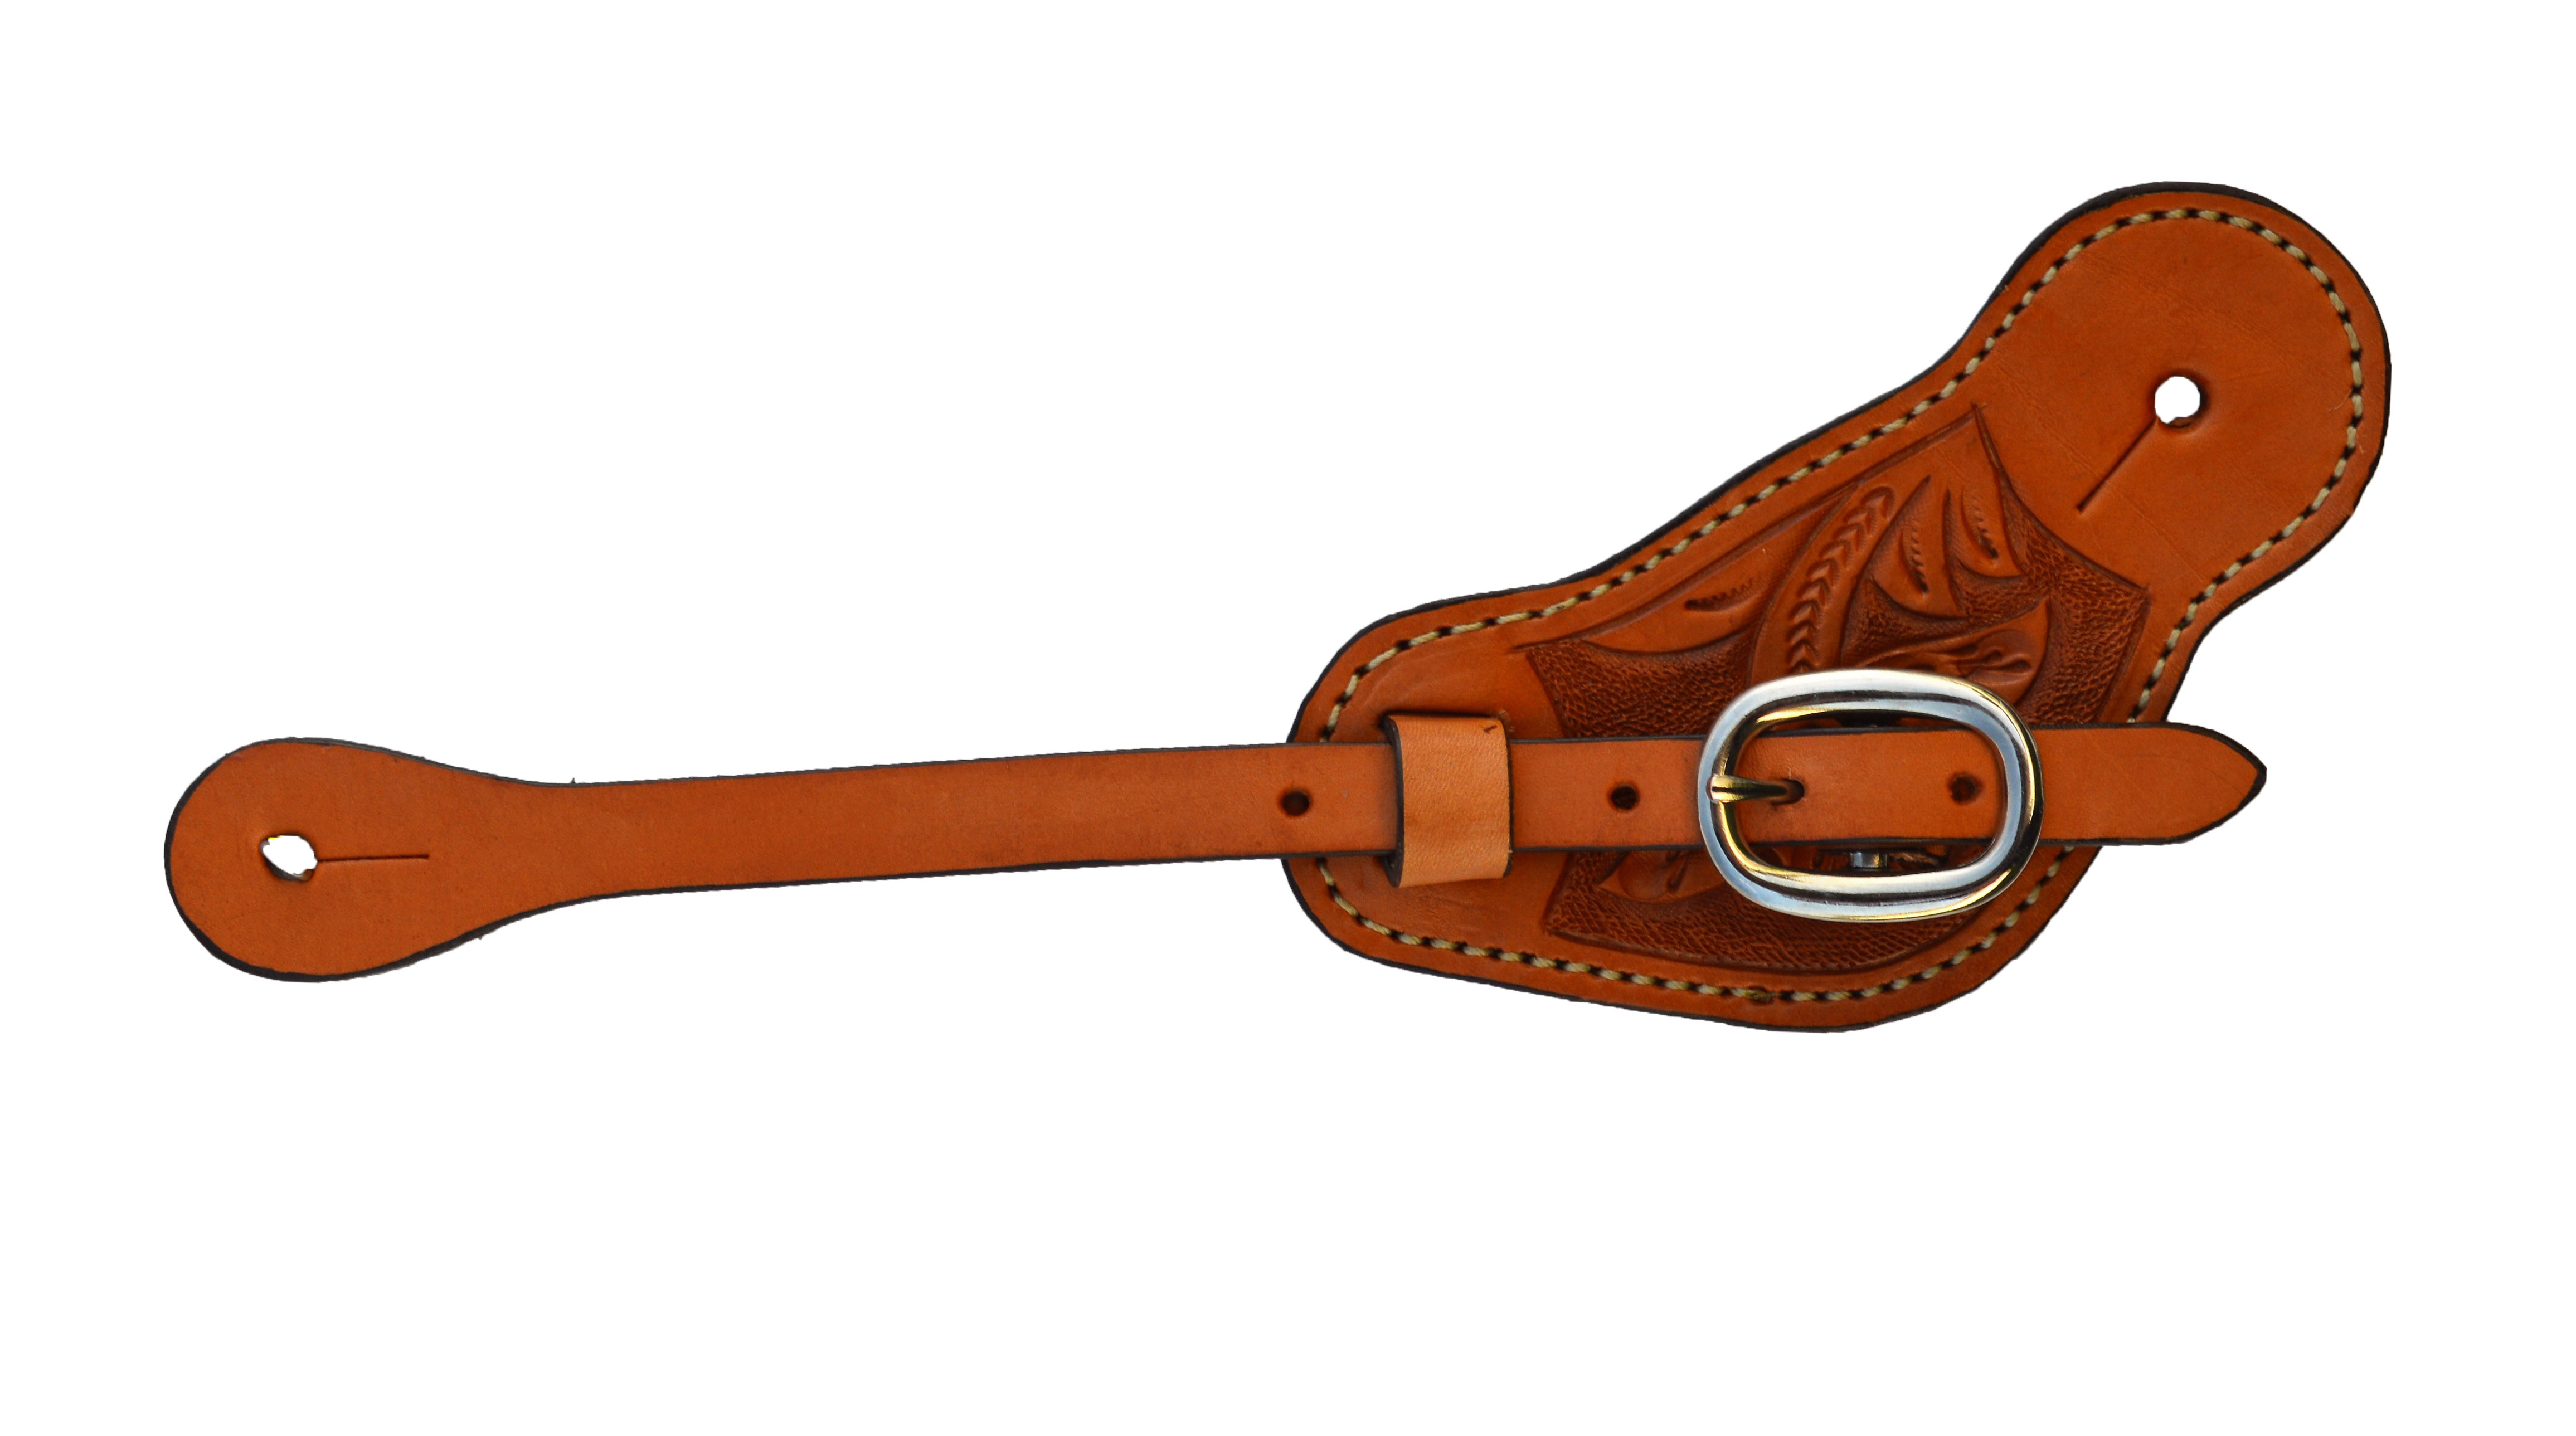 384-F COWBOYS SPUR STRAPS GOLDEN LEATHER WITH FLORAL TOOLING